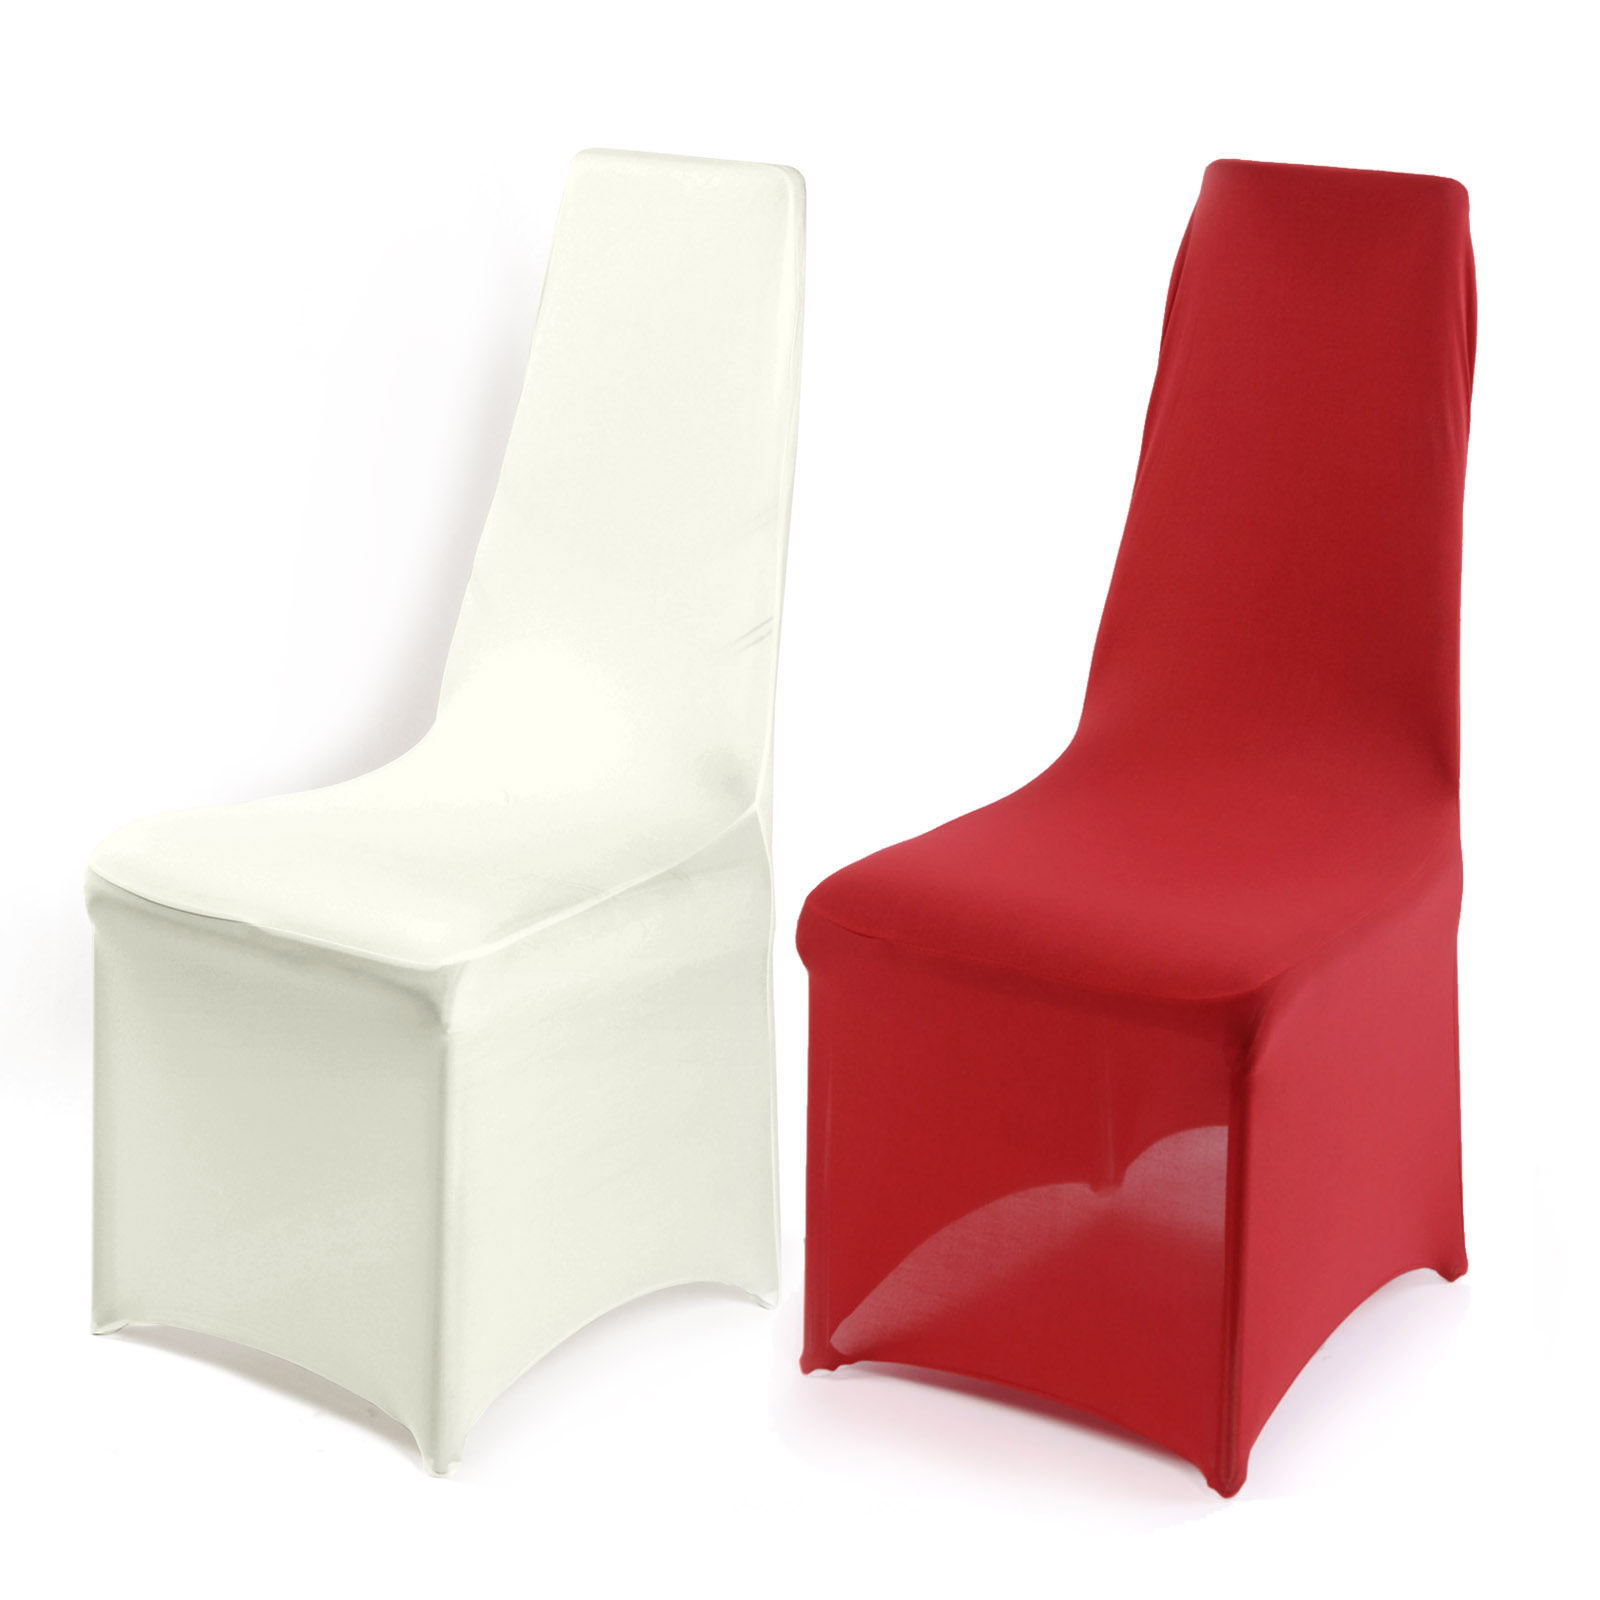 chair covers universal kohls lounge spandex available in white red black